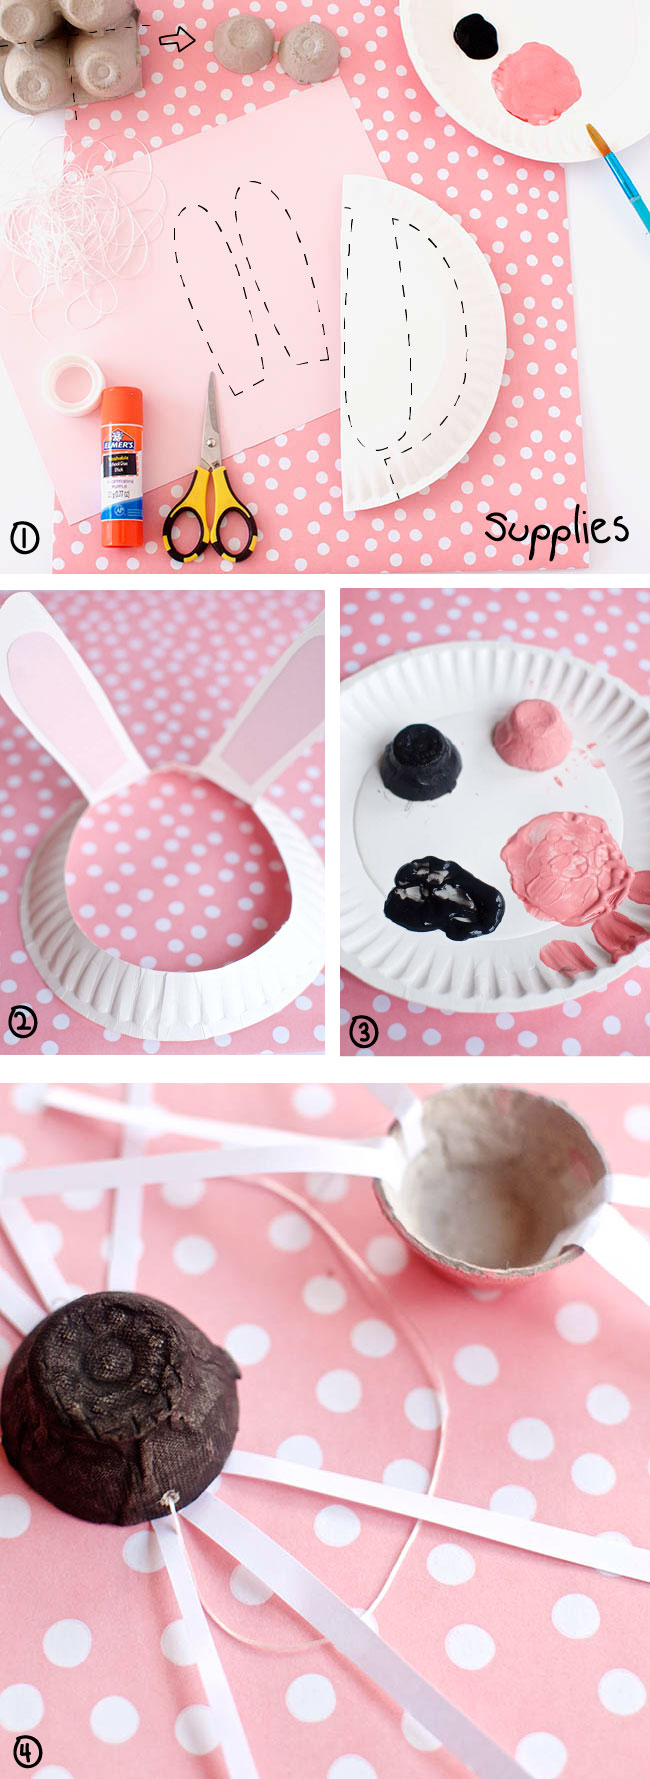 Use a paper plate and egg carton to make bunny ears and nose